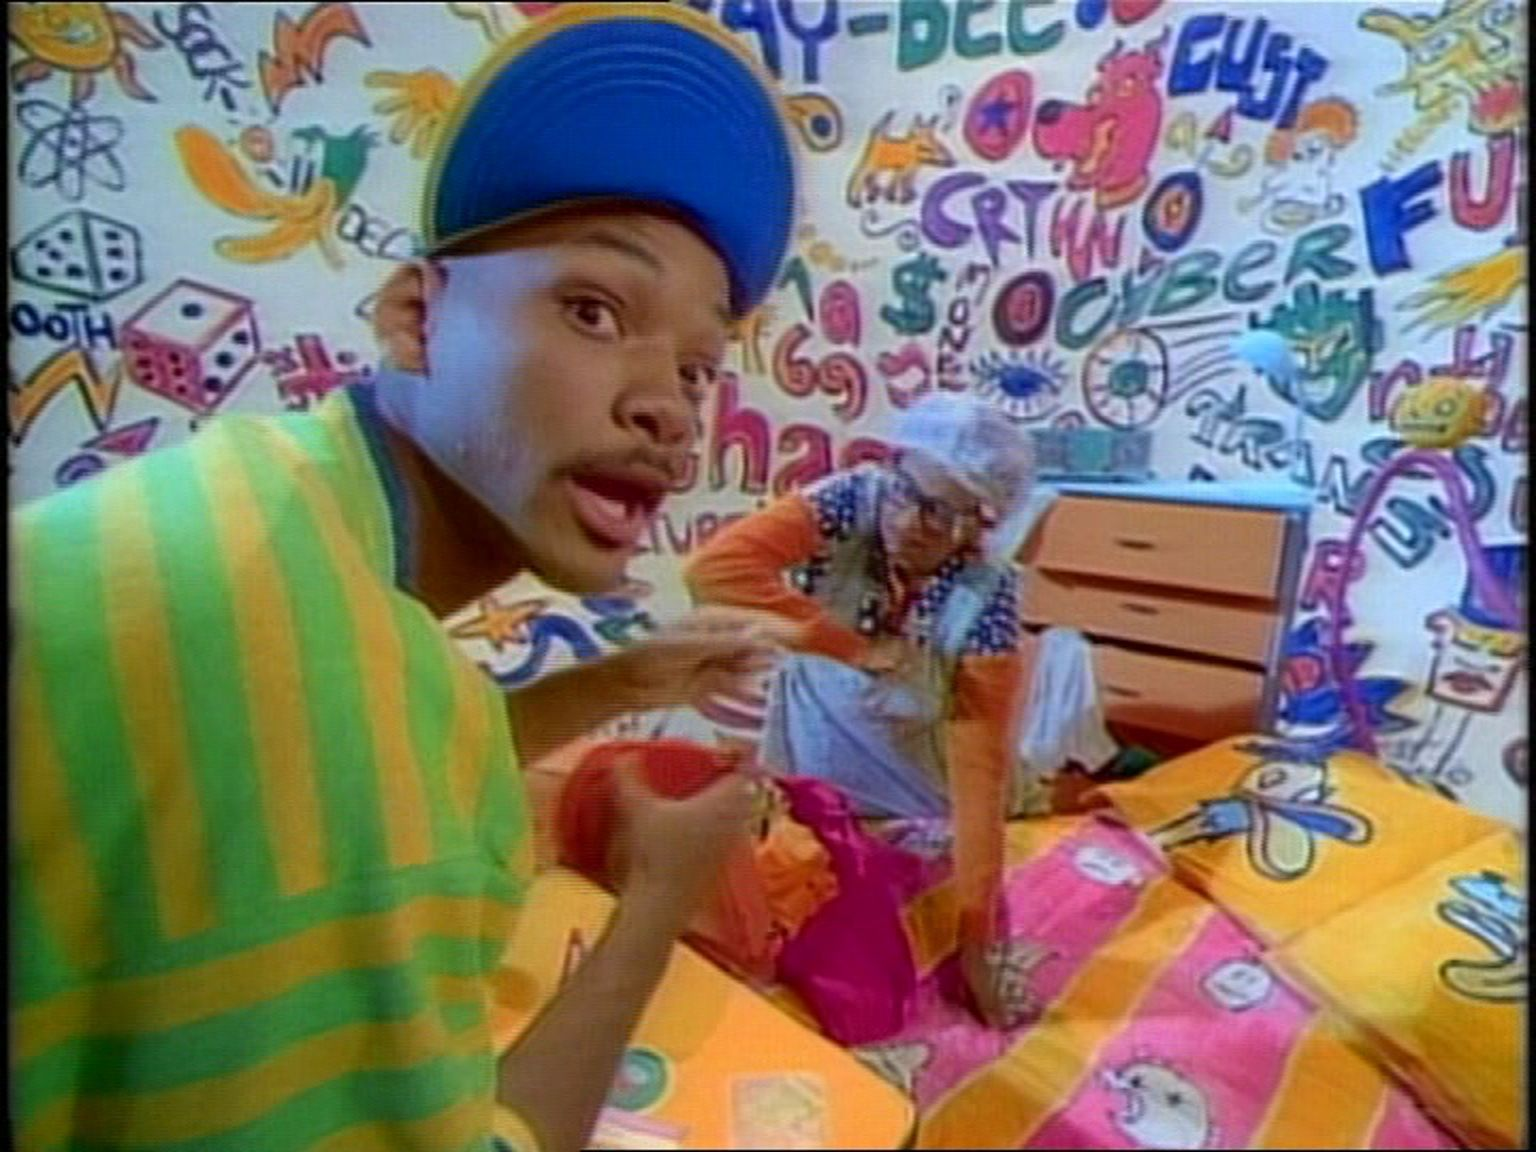 Fresh prince of bel air 1x01 the fresh prince project the fresh prince